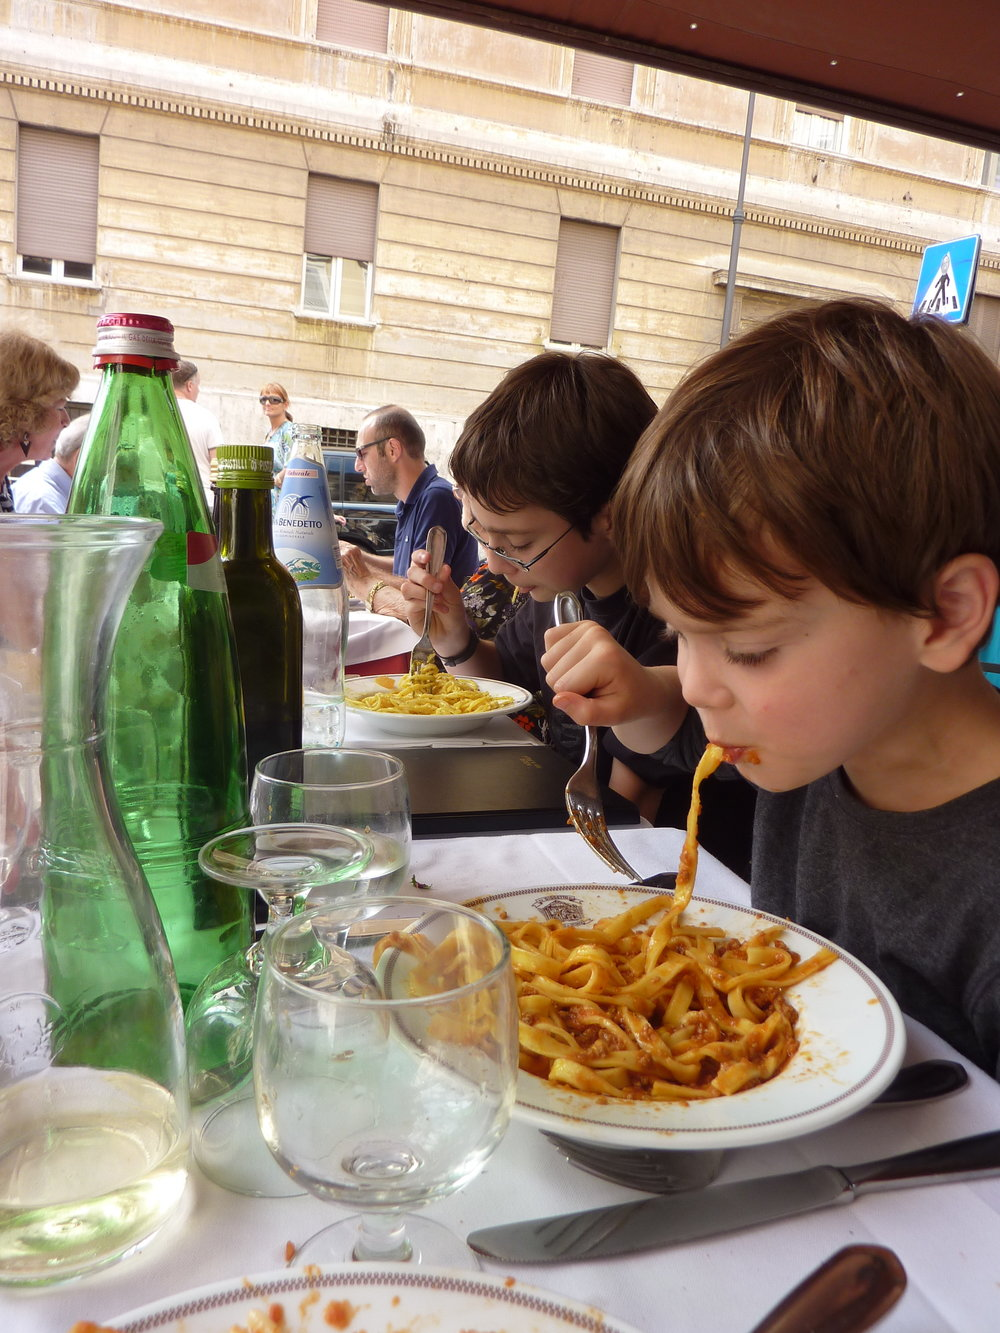 Kids eating in Rome, Italy